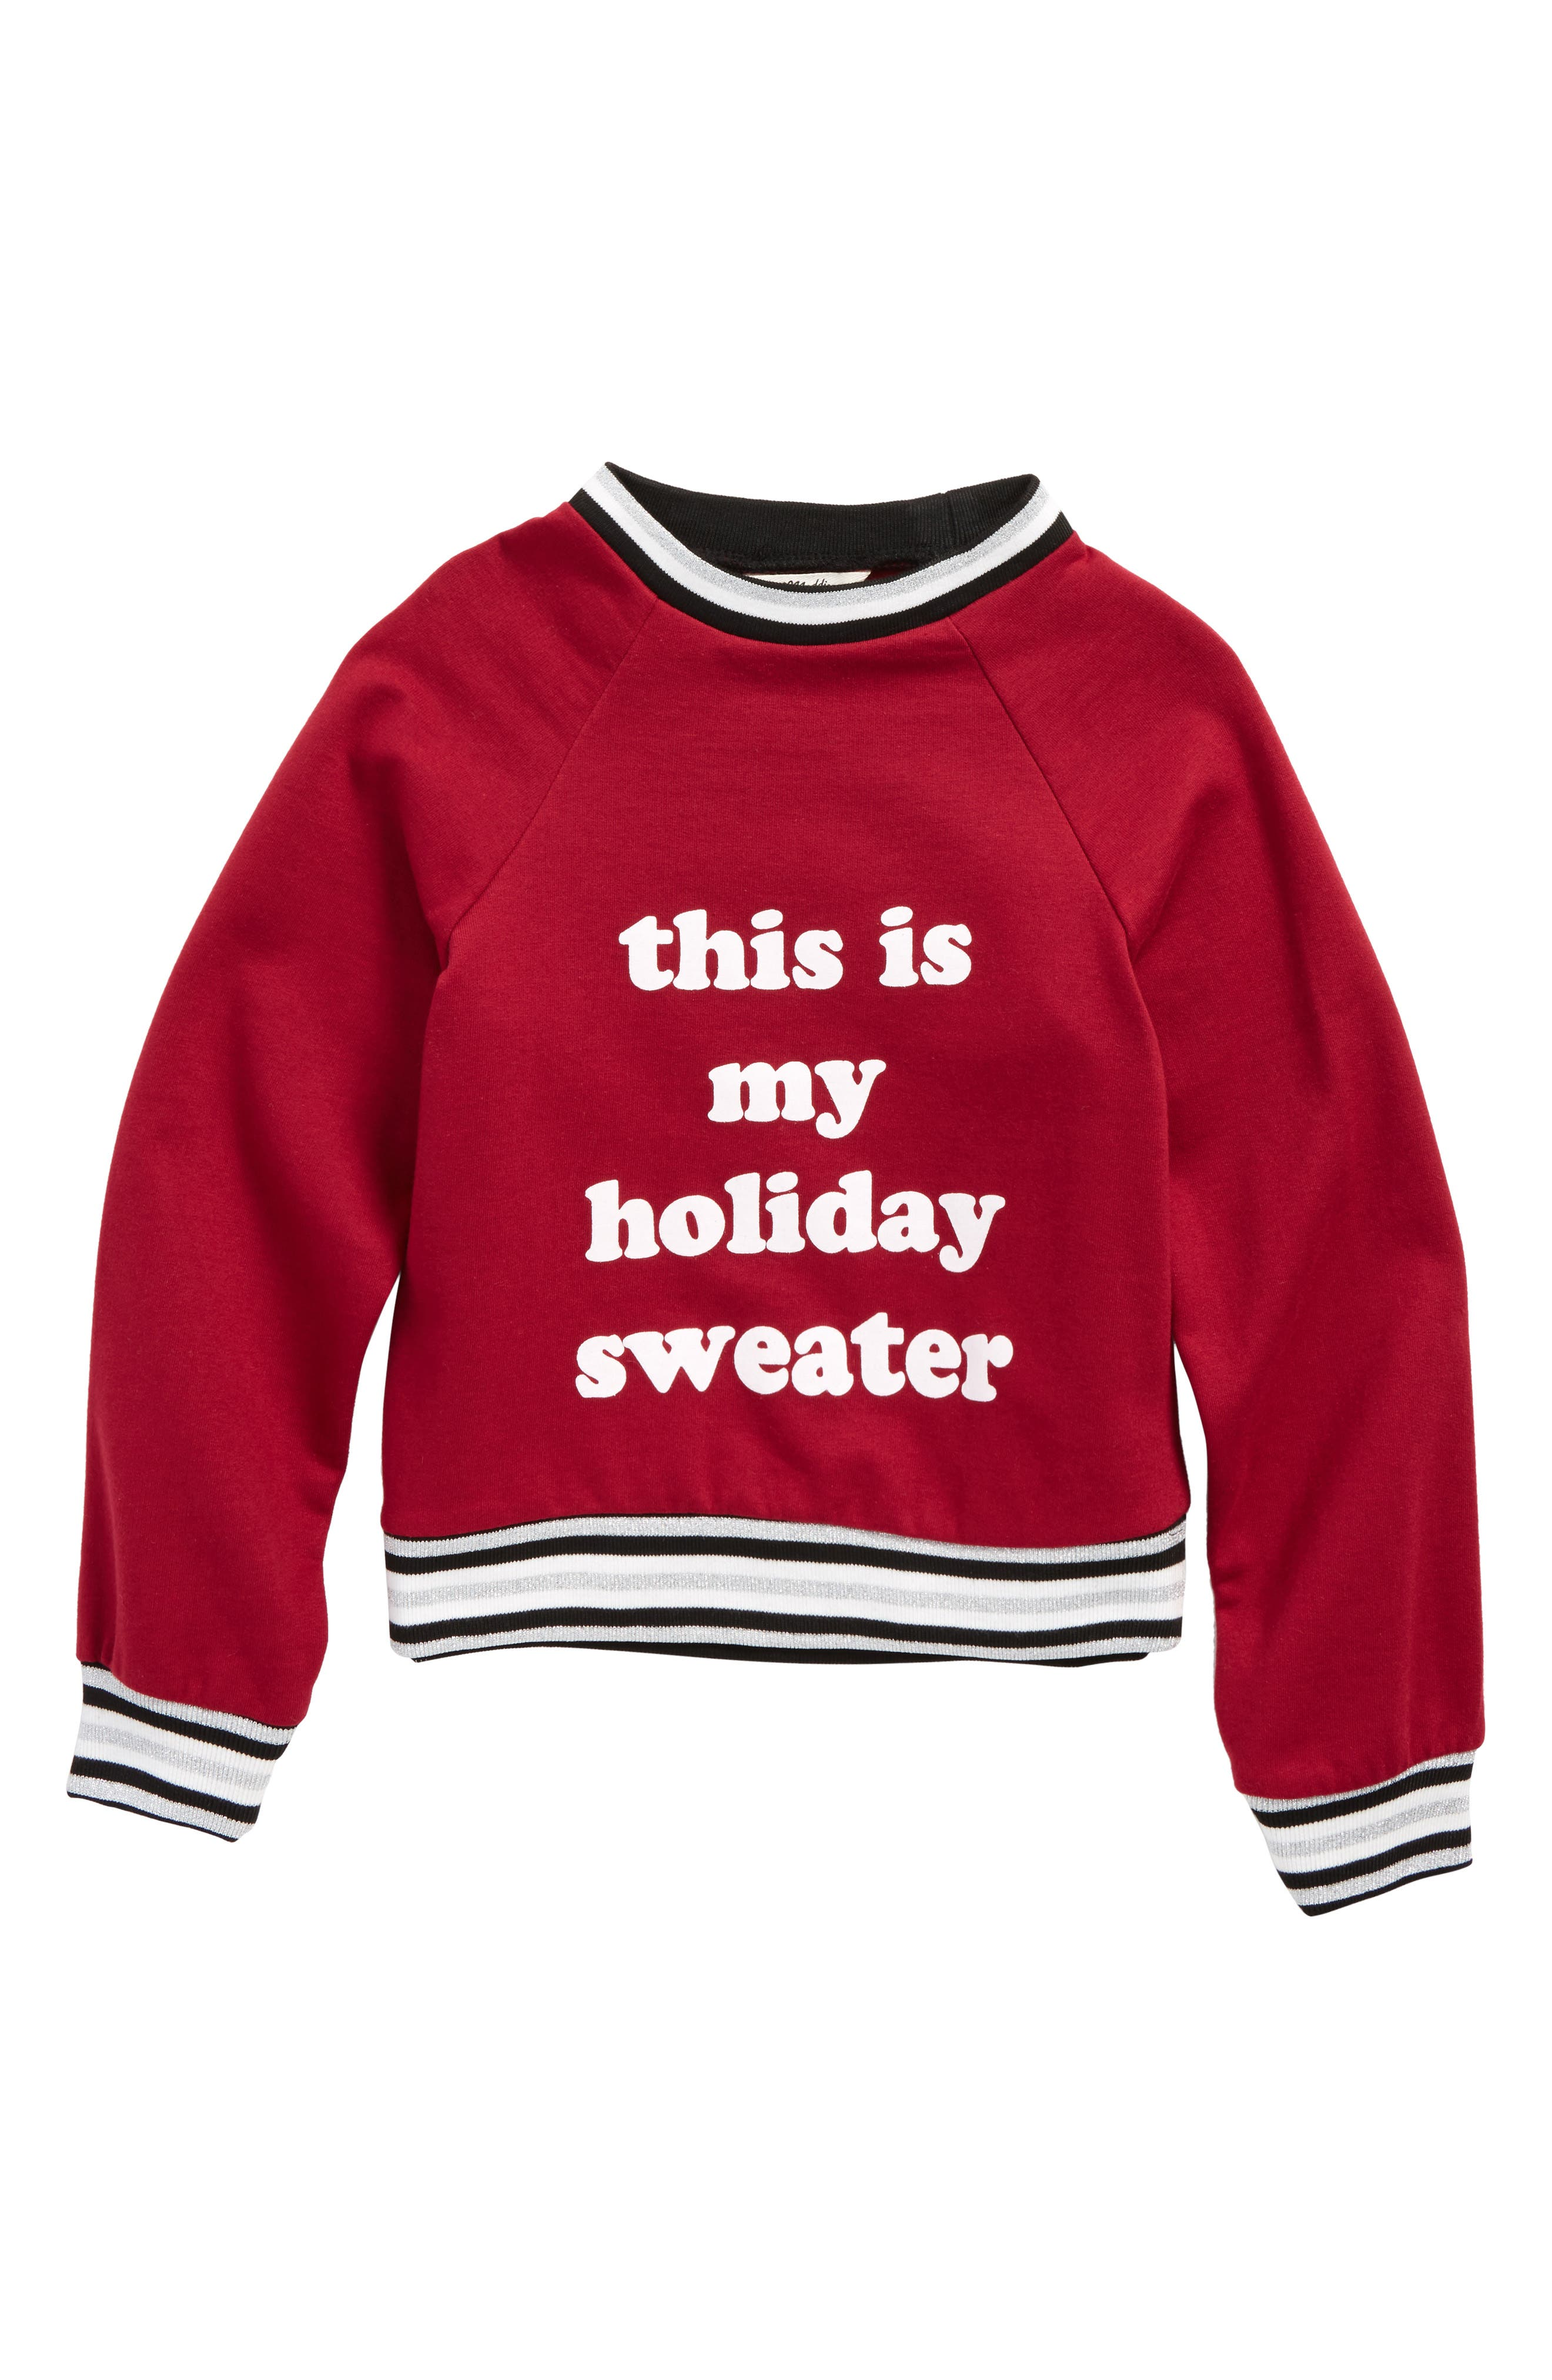 This Is My Holiday Sweater Graphic Sweatshirt,                         Main,                         color, Burgundy